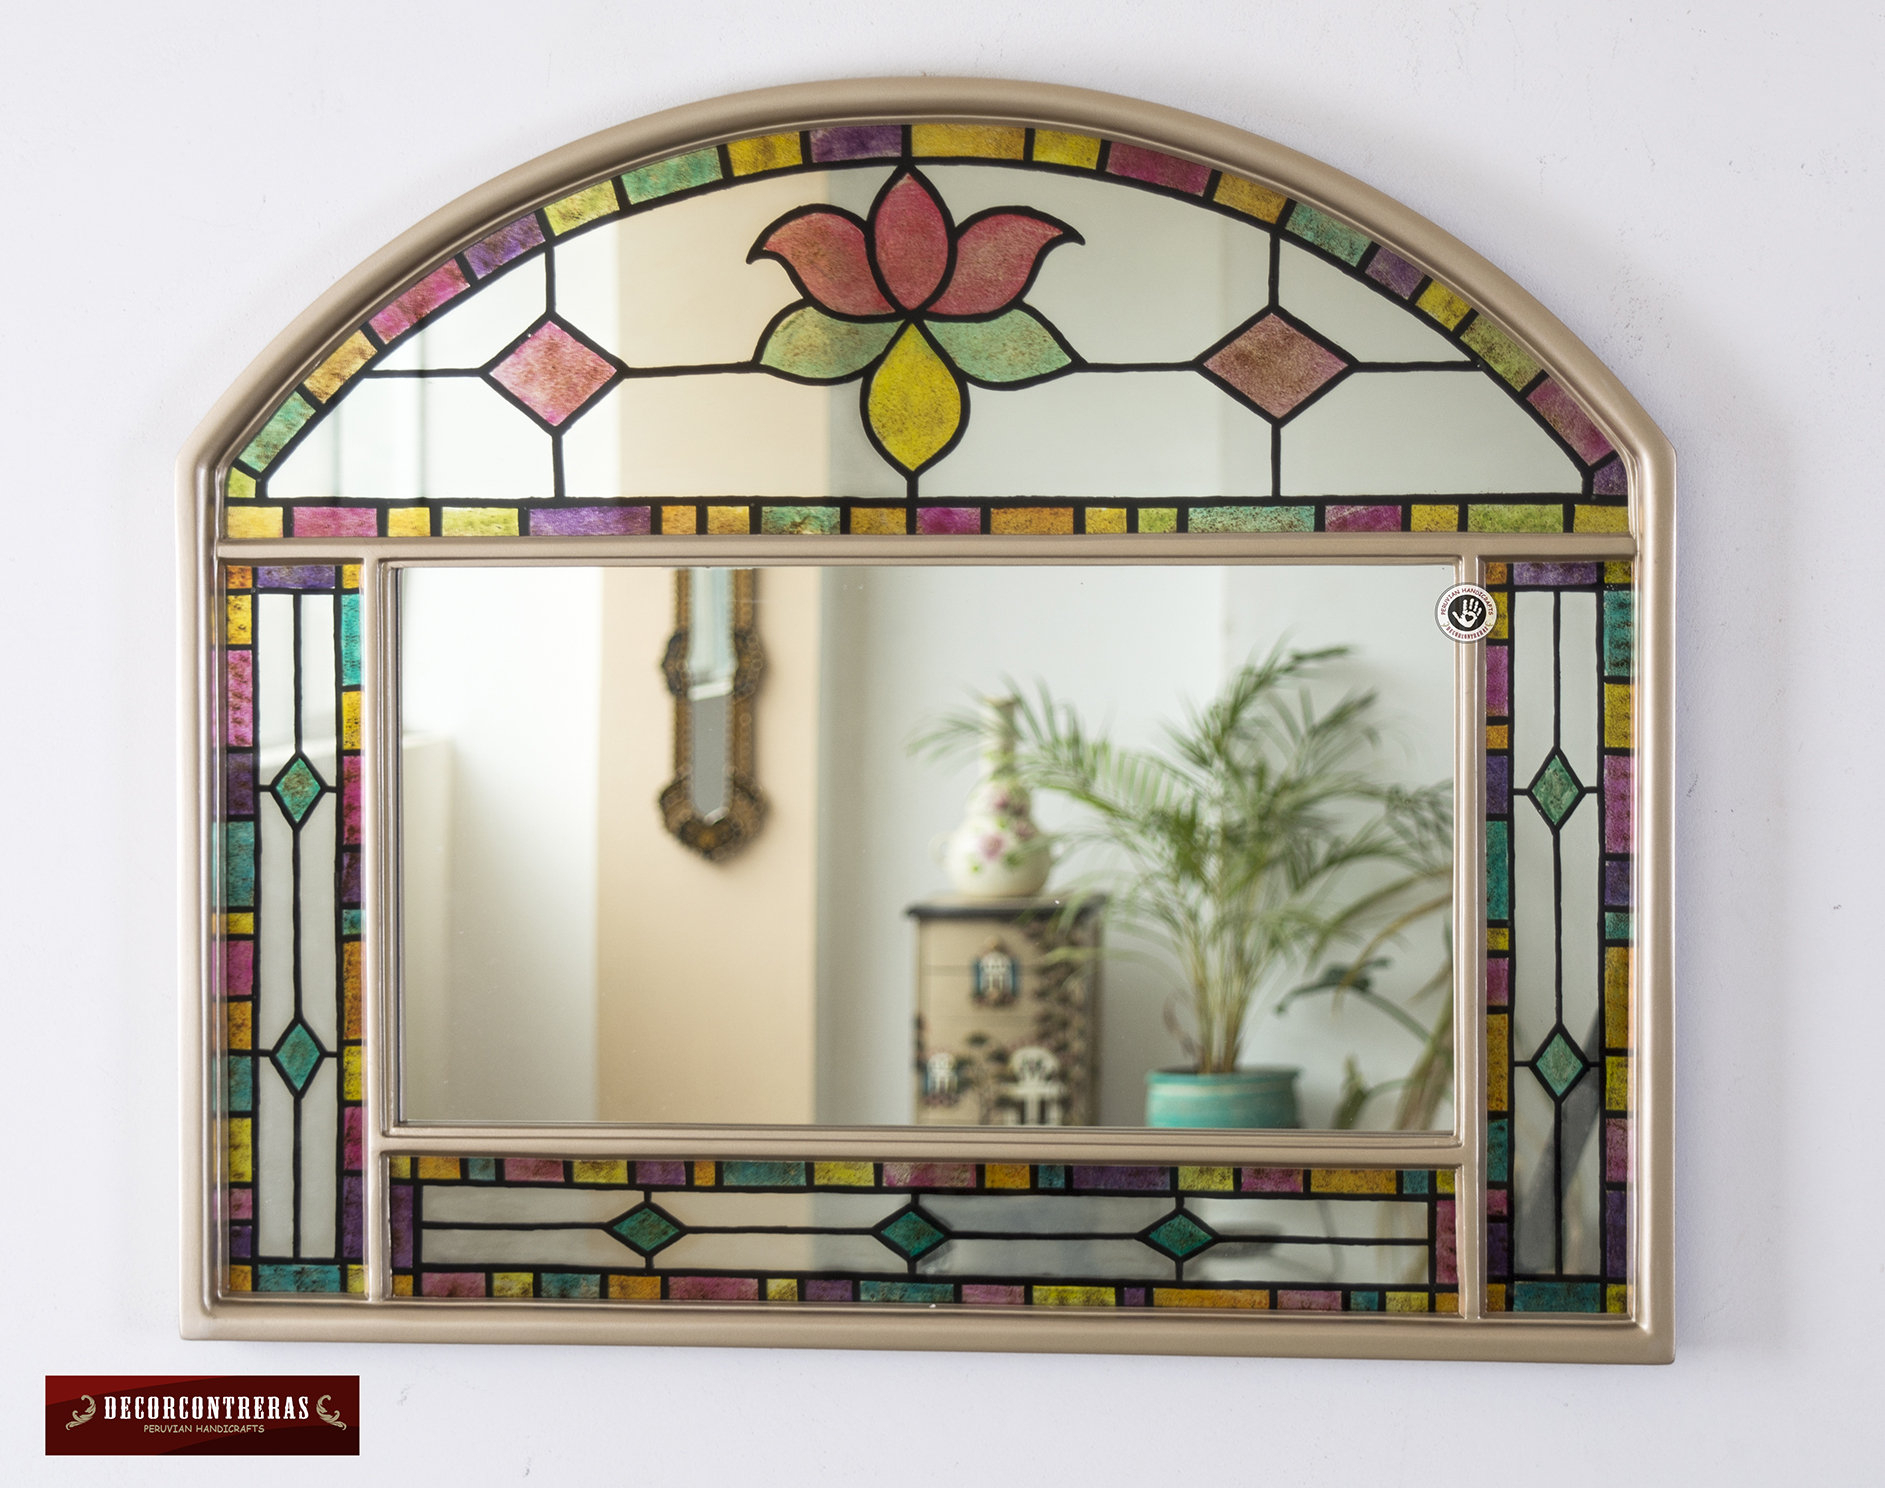 Peruvian Decorative Mirror For Wall, Arts Crafts Mirror Wall, Glass Wood Vanity Mirror, Wall Mirror For Living Room, Bathroom, Unique Piece Pertaining To Bem Decorative Wall Mirrors (View 23 of 30)